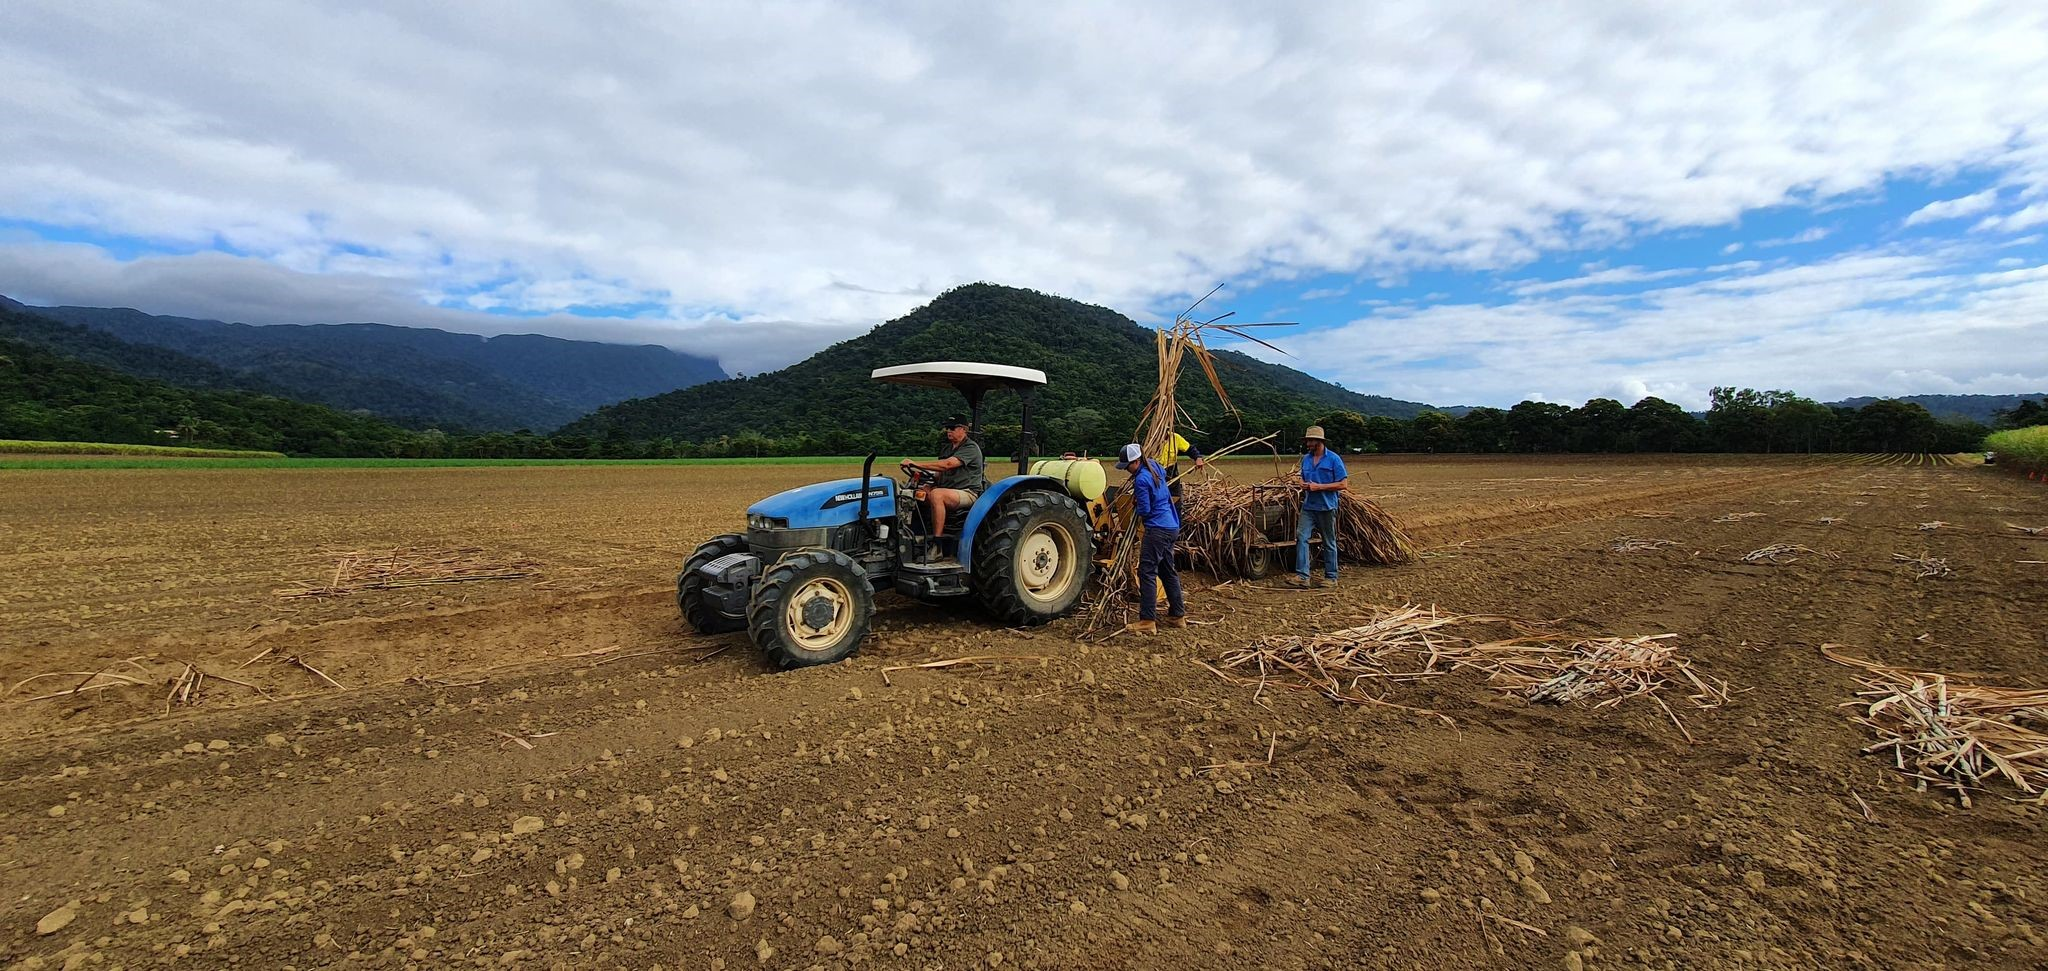 Tractor in field with three men planting sticks of sugar cane